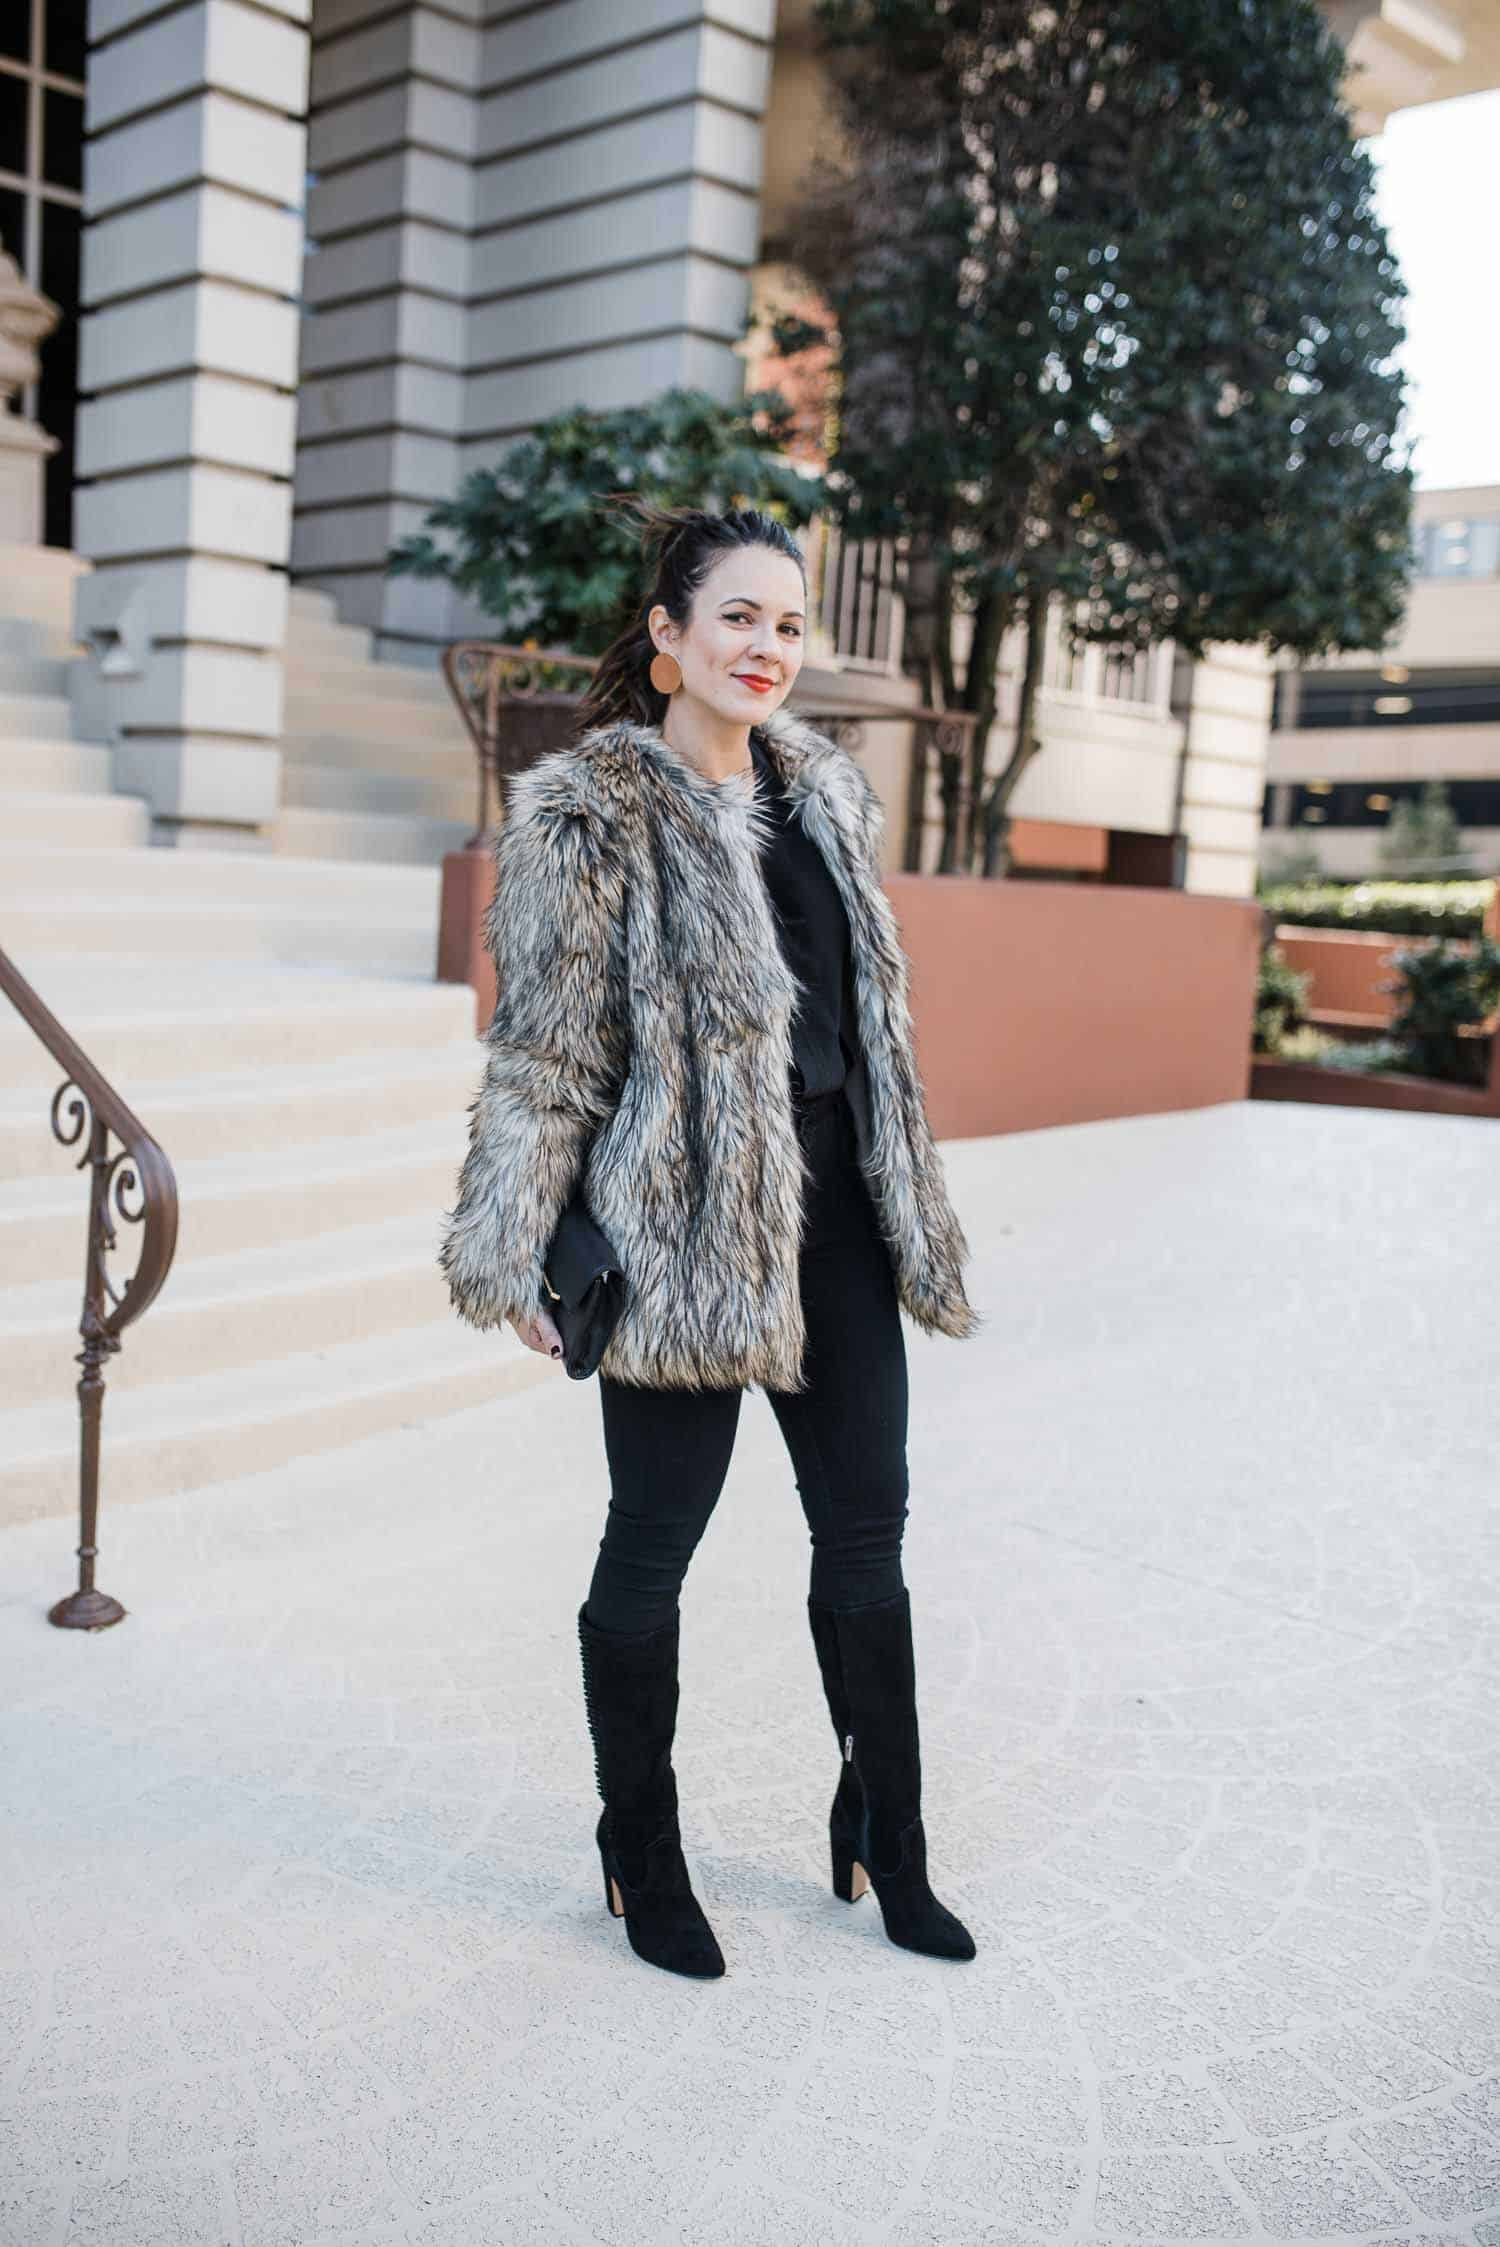 Vince Camuto faux fur jacket - My Style Vita